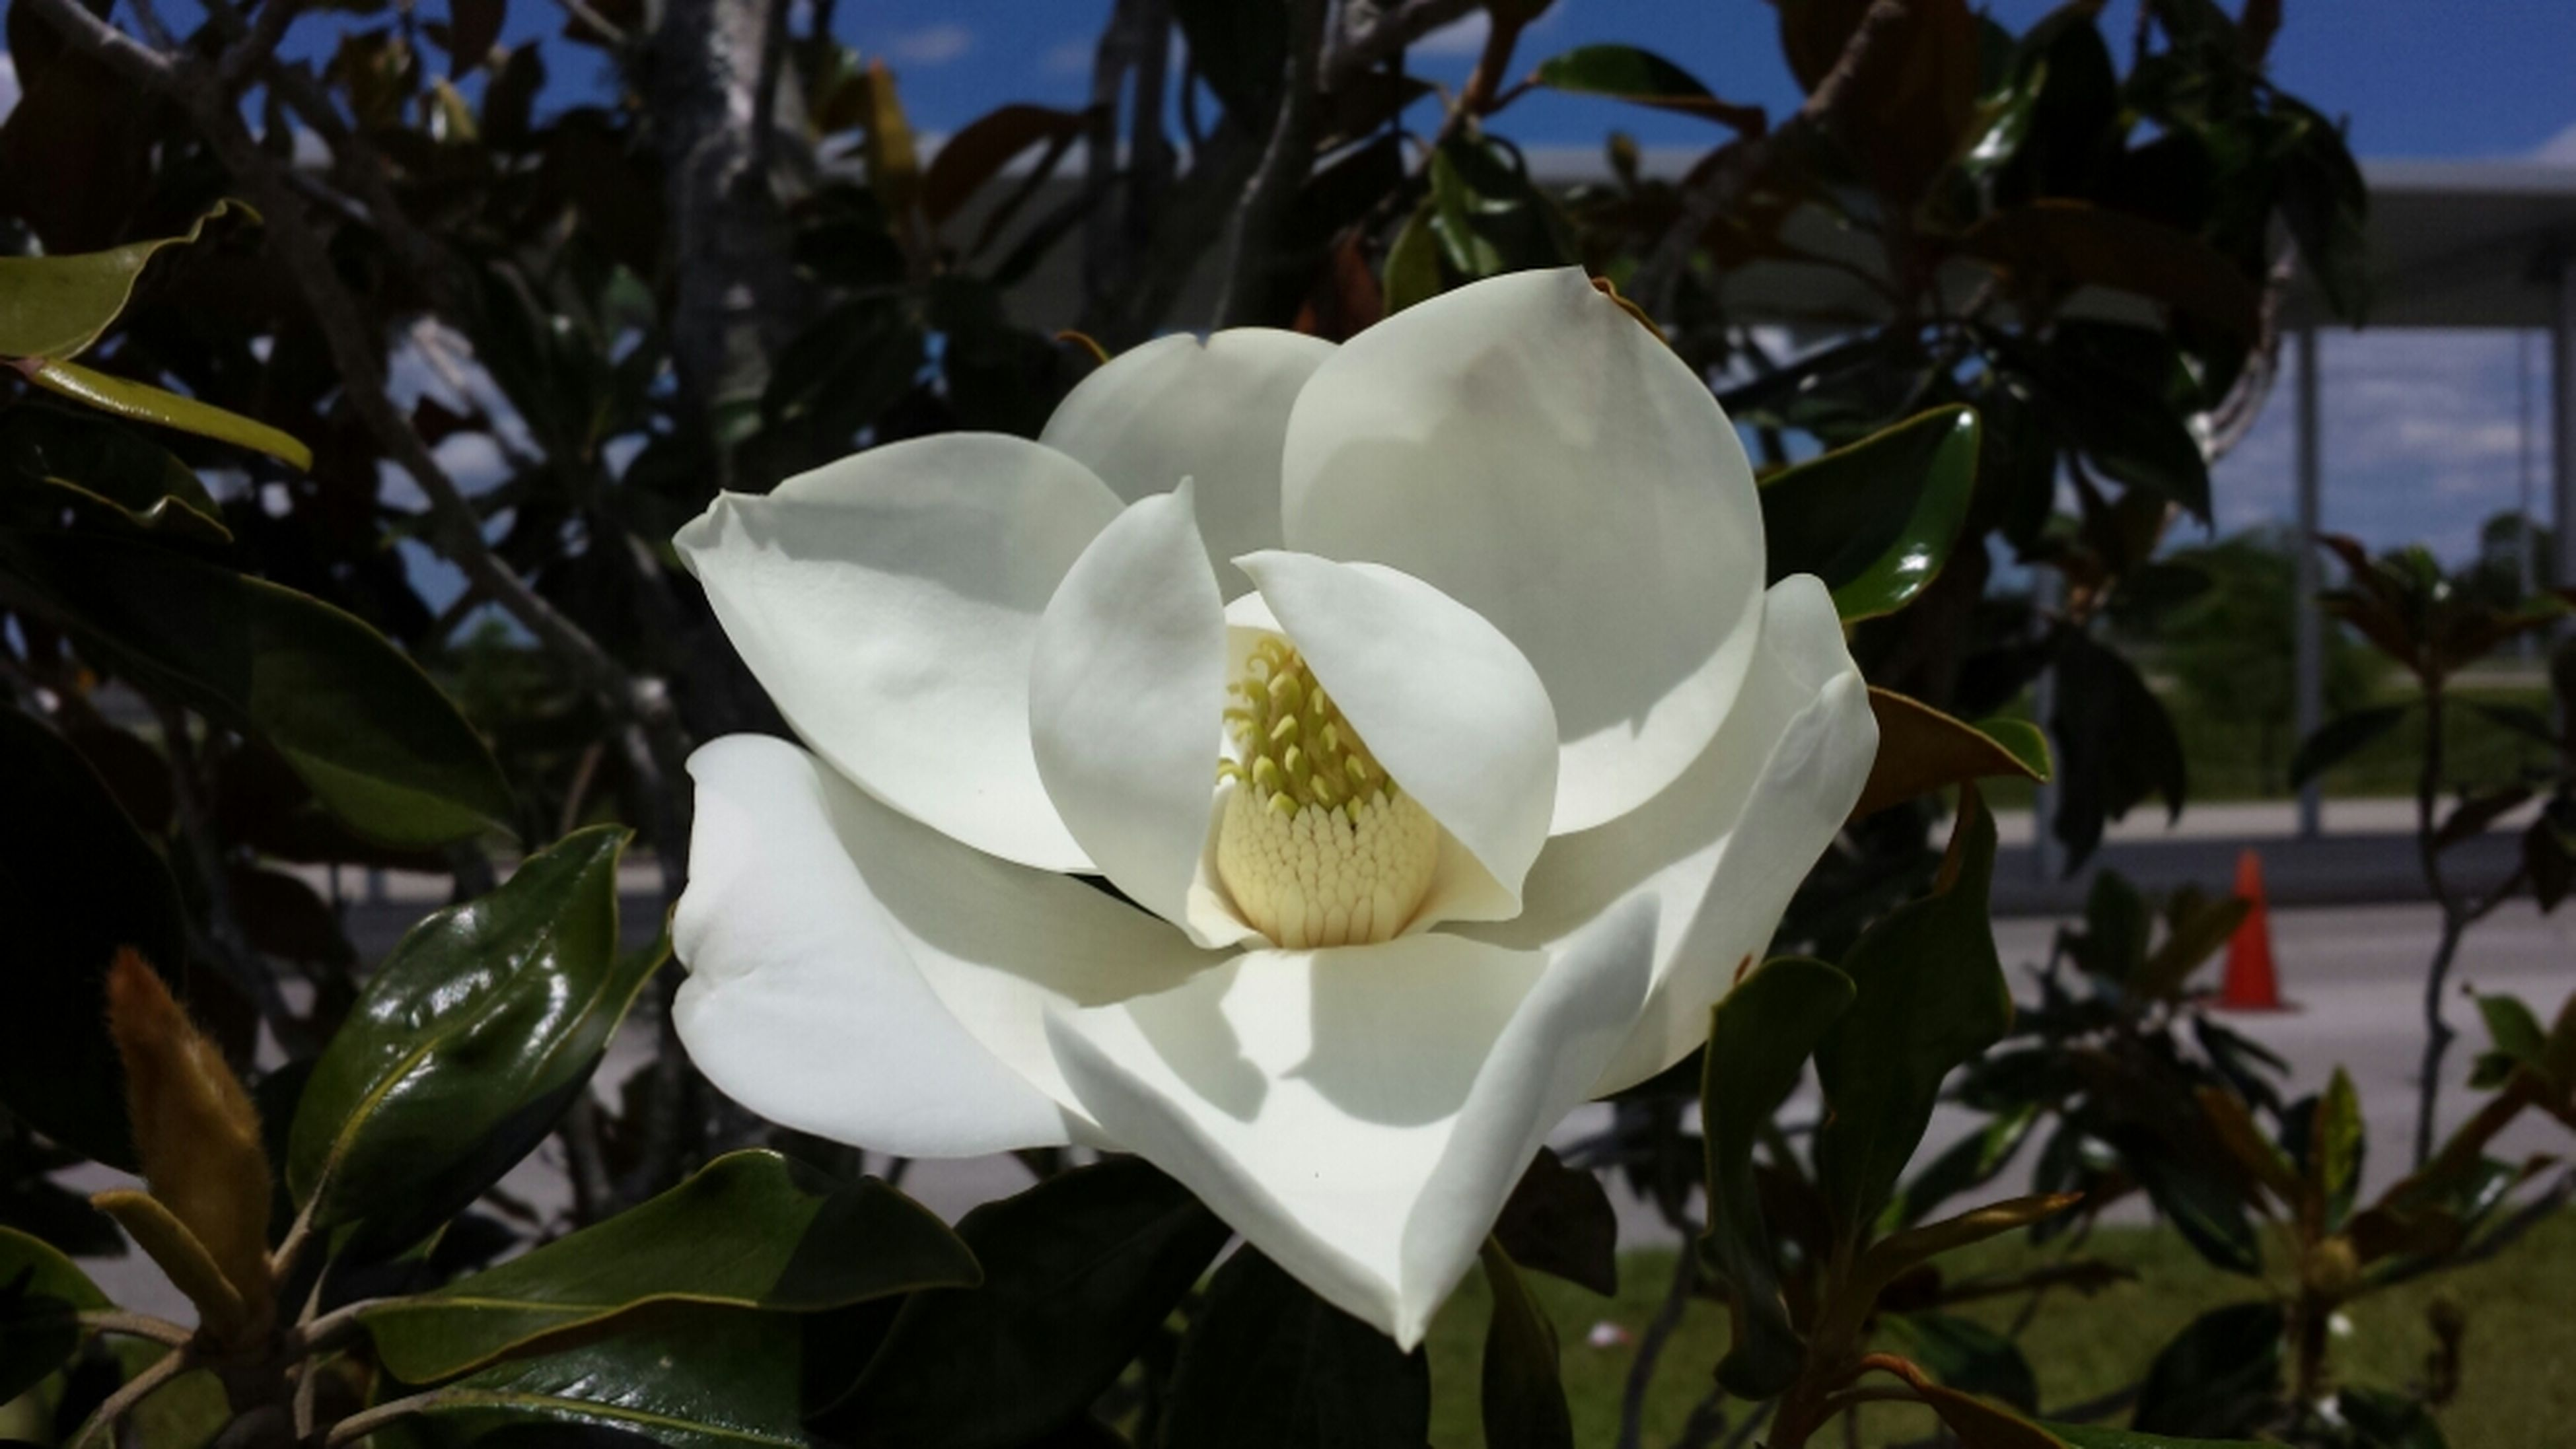 flower, petal, flower head, freshness, fragility, white color, growth, focus on foreground, close-up, blooming, beauty in nature, single flower, plant, leaf, nature, in bloom, rose - flower, white, day, sunlight